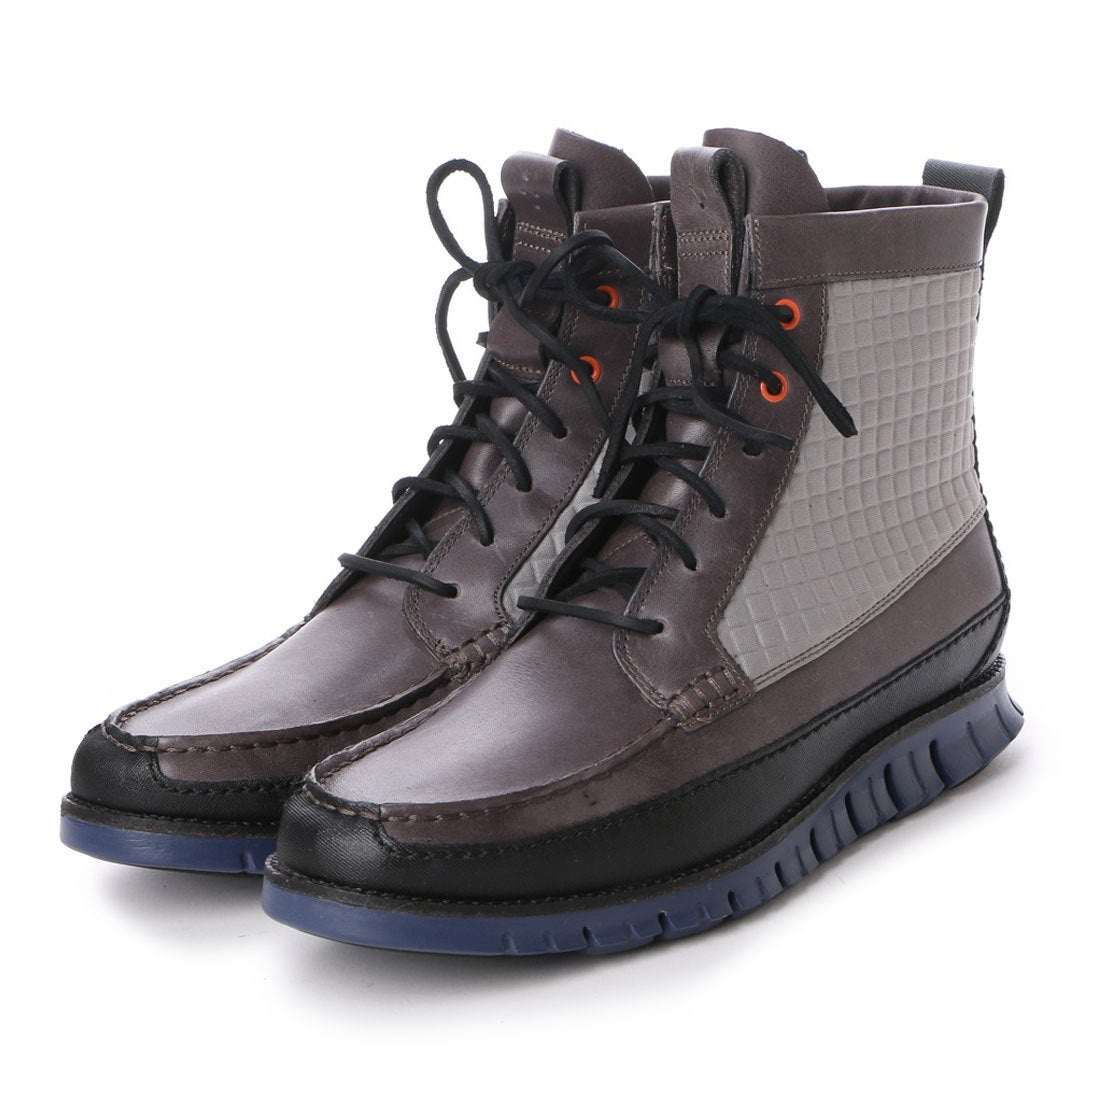 【SALE 60%OFF】コール ハーン COLE HAAN ZEROGRAND TALL BOOT (SCLOUD QUILT) メンズ